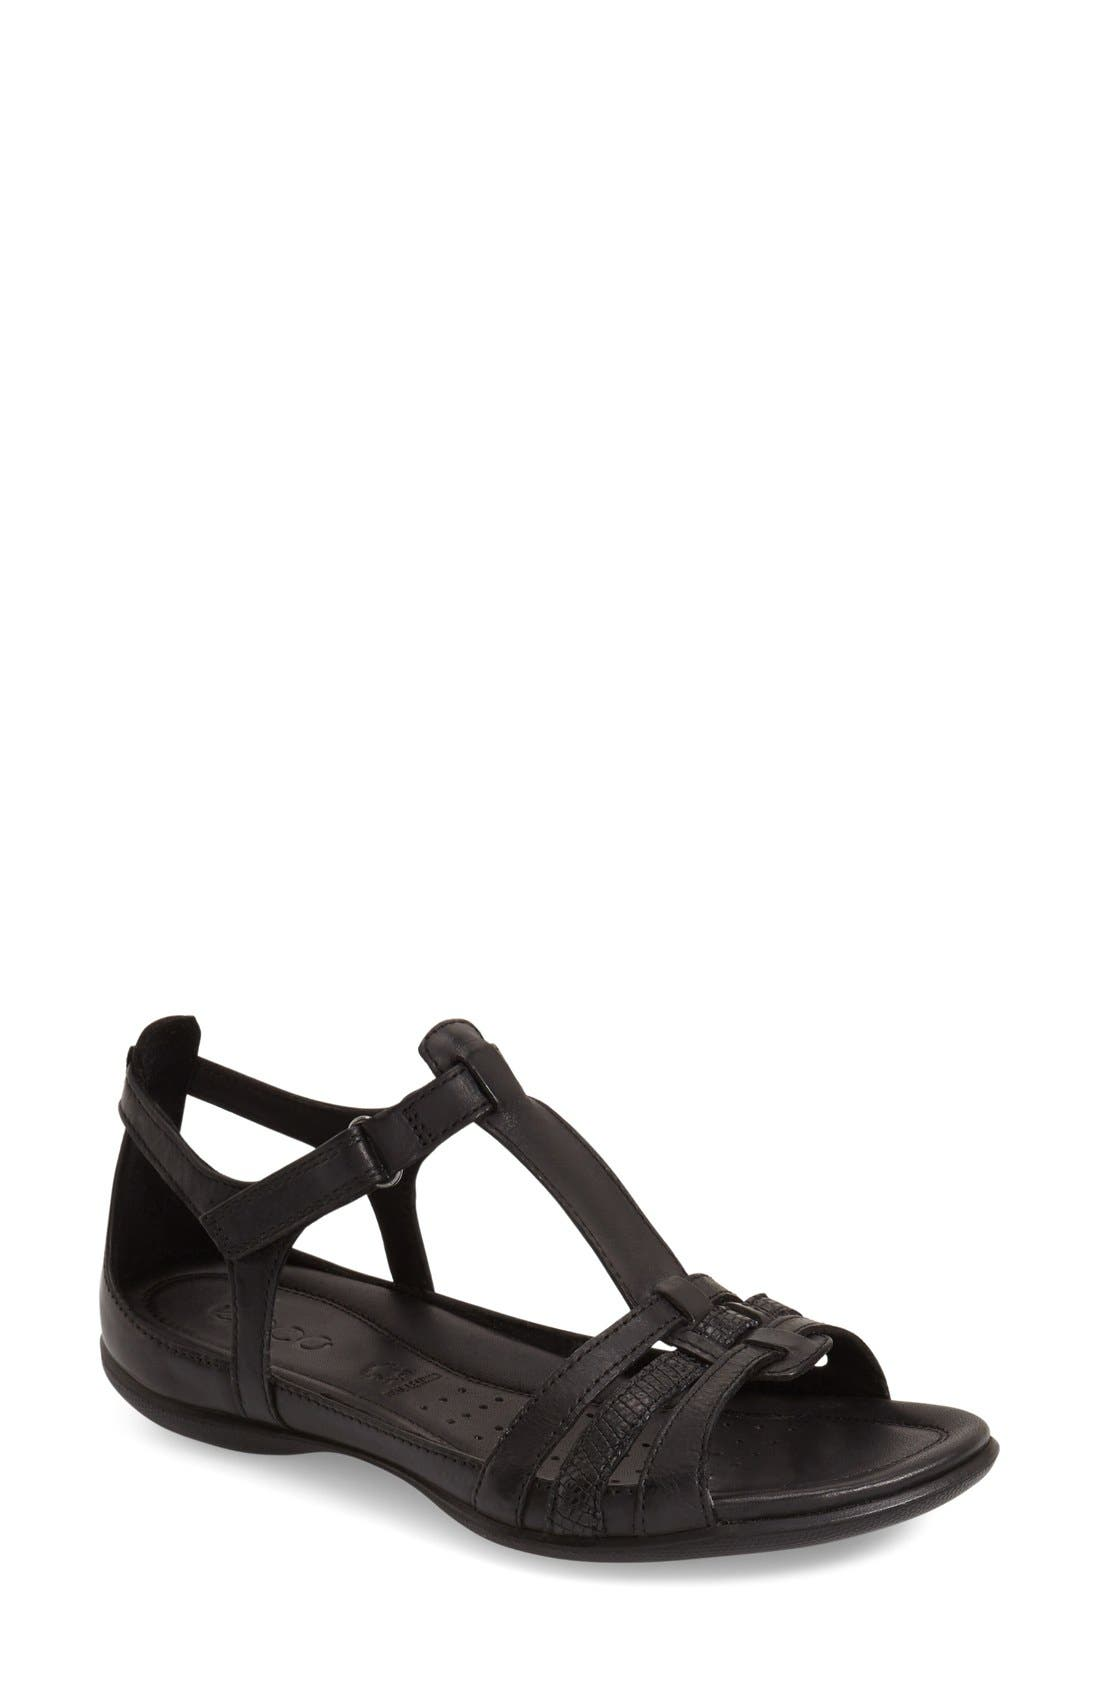 ecco sandals for women